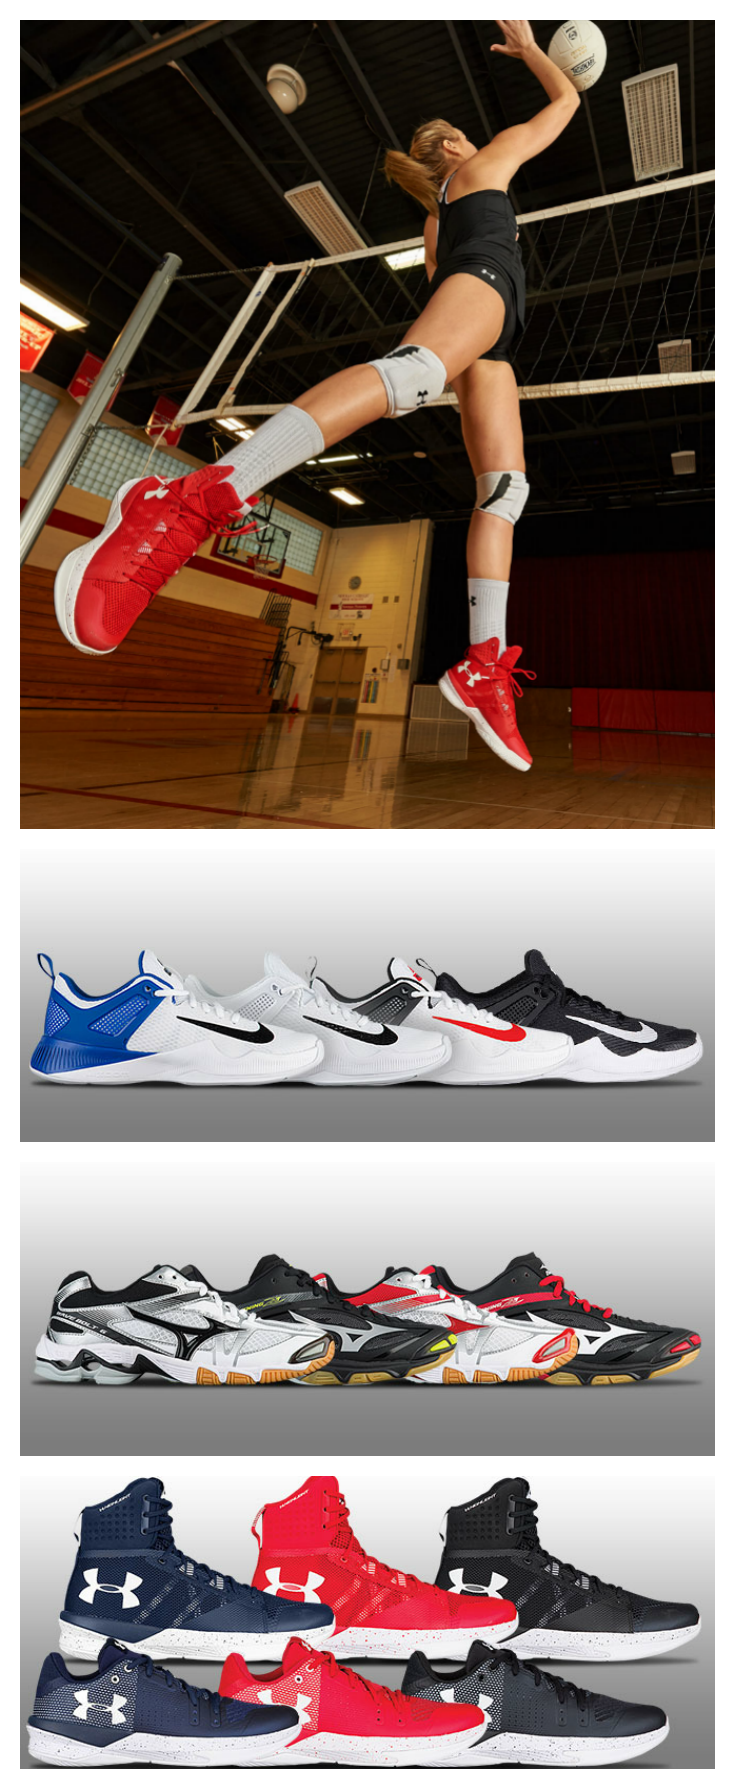 The Best Volleyball Shoes And Products Gear Up The Right Way Volleyball Shoes Best Volleyball Shoes Volleyball Sneakers